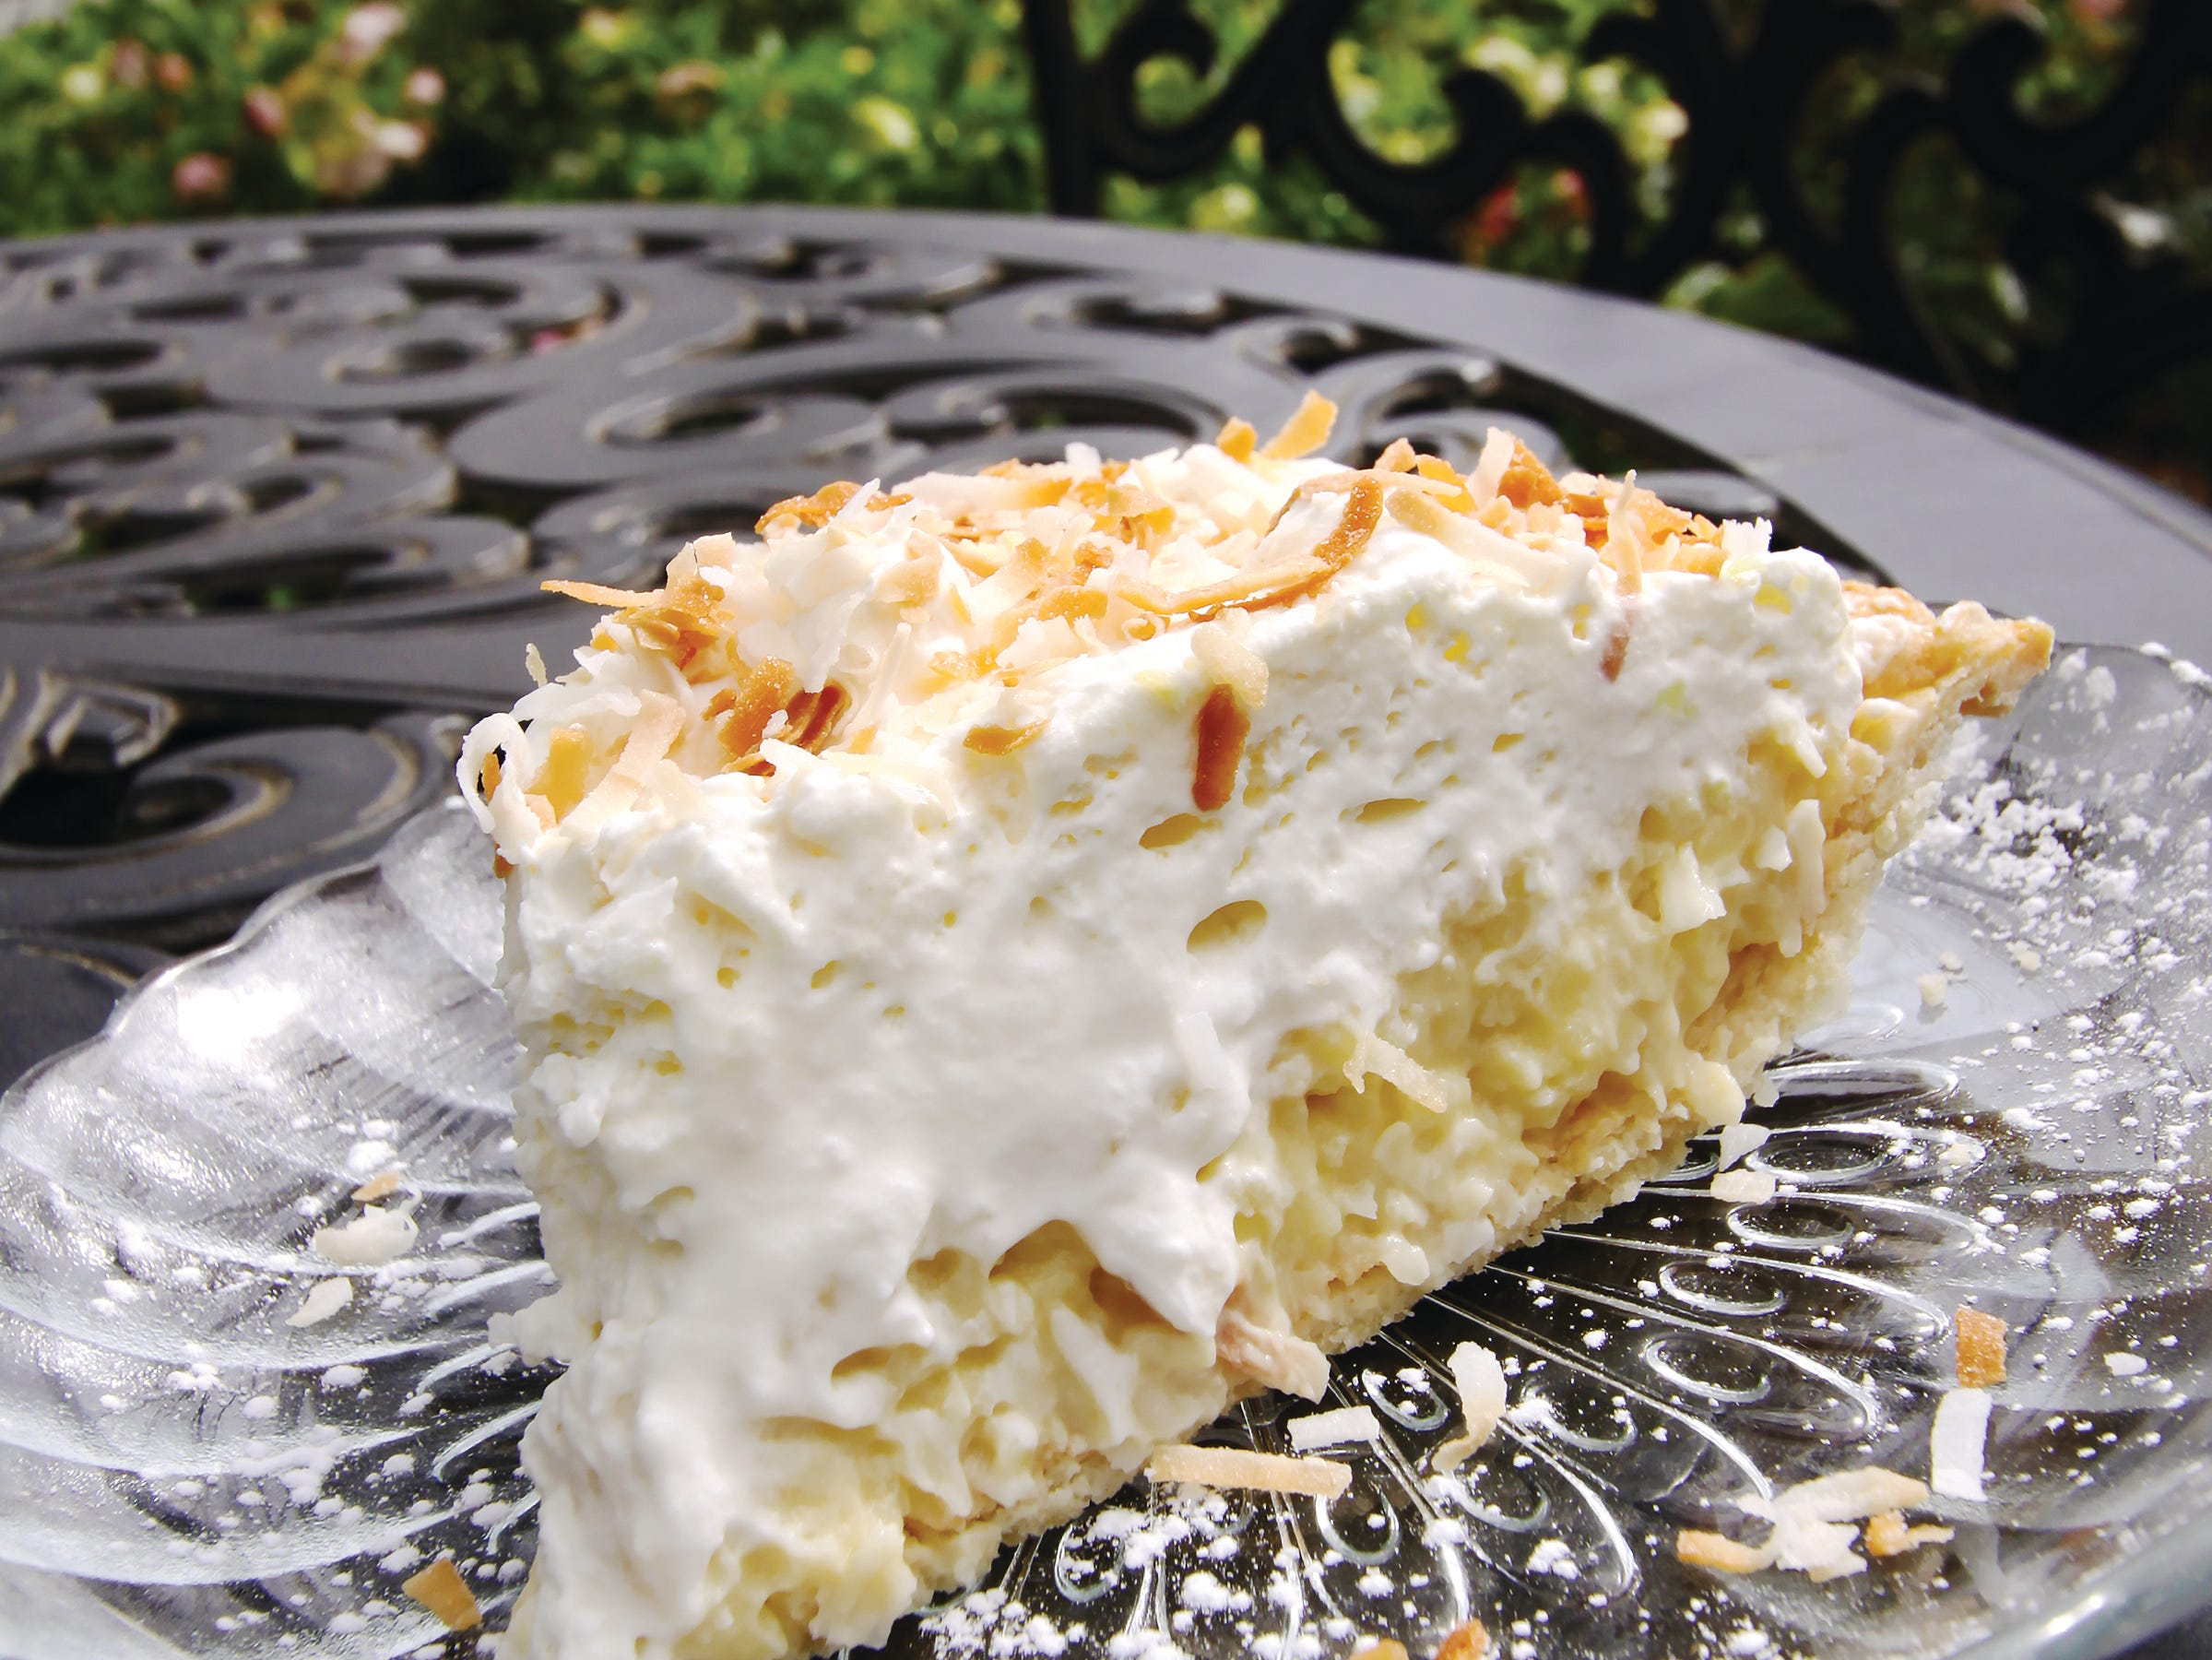 Coconut creme pie from Mary's at Falls Cottage.